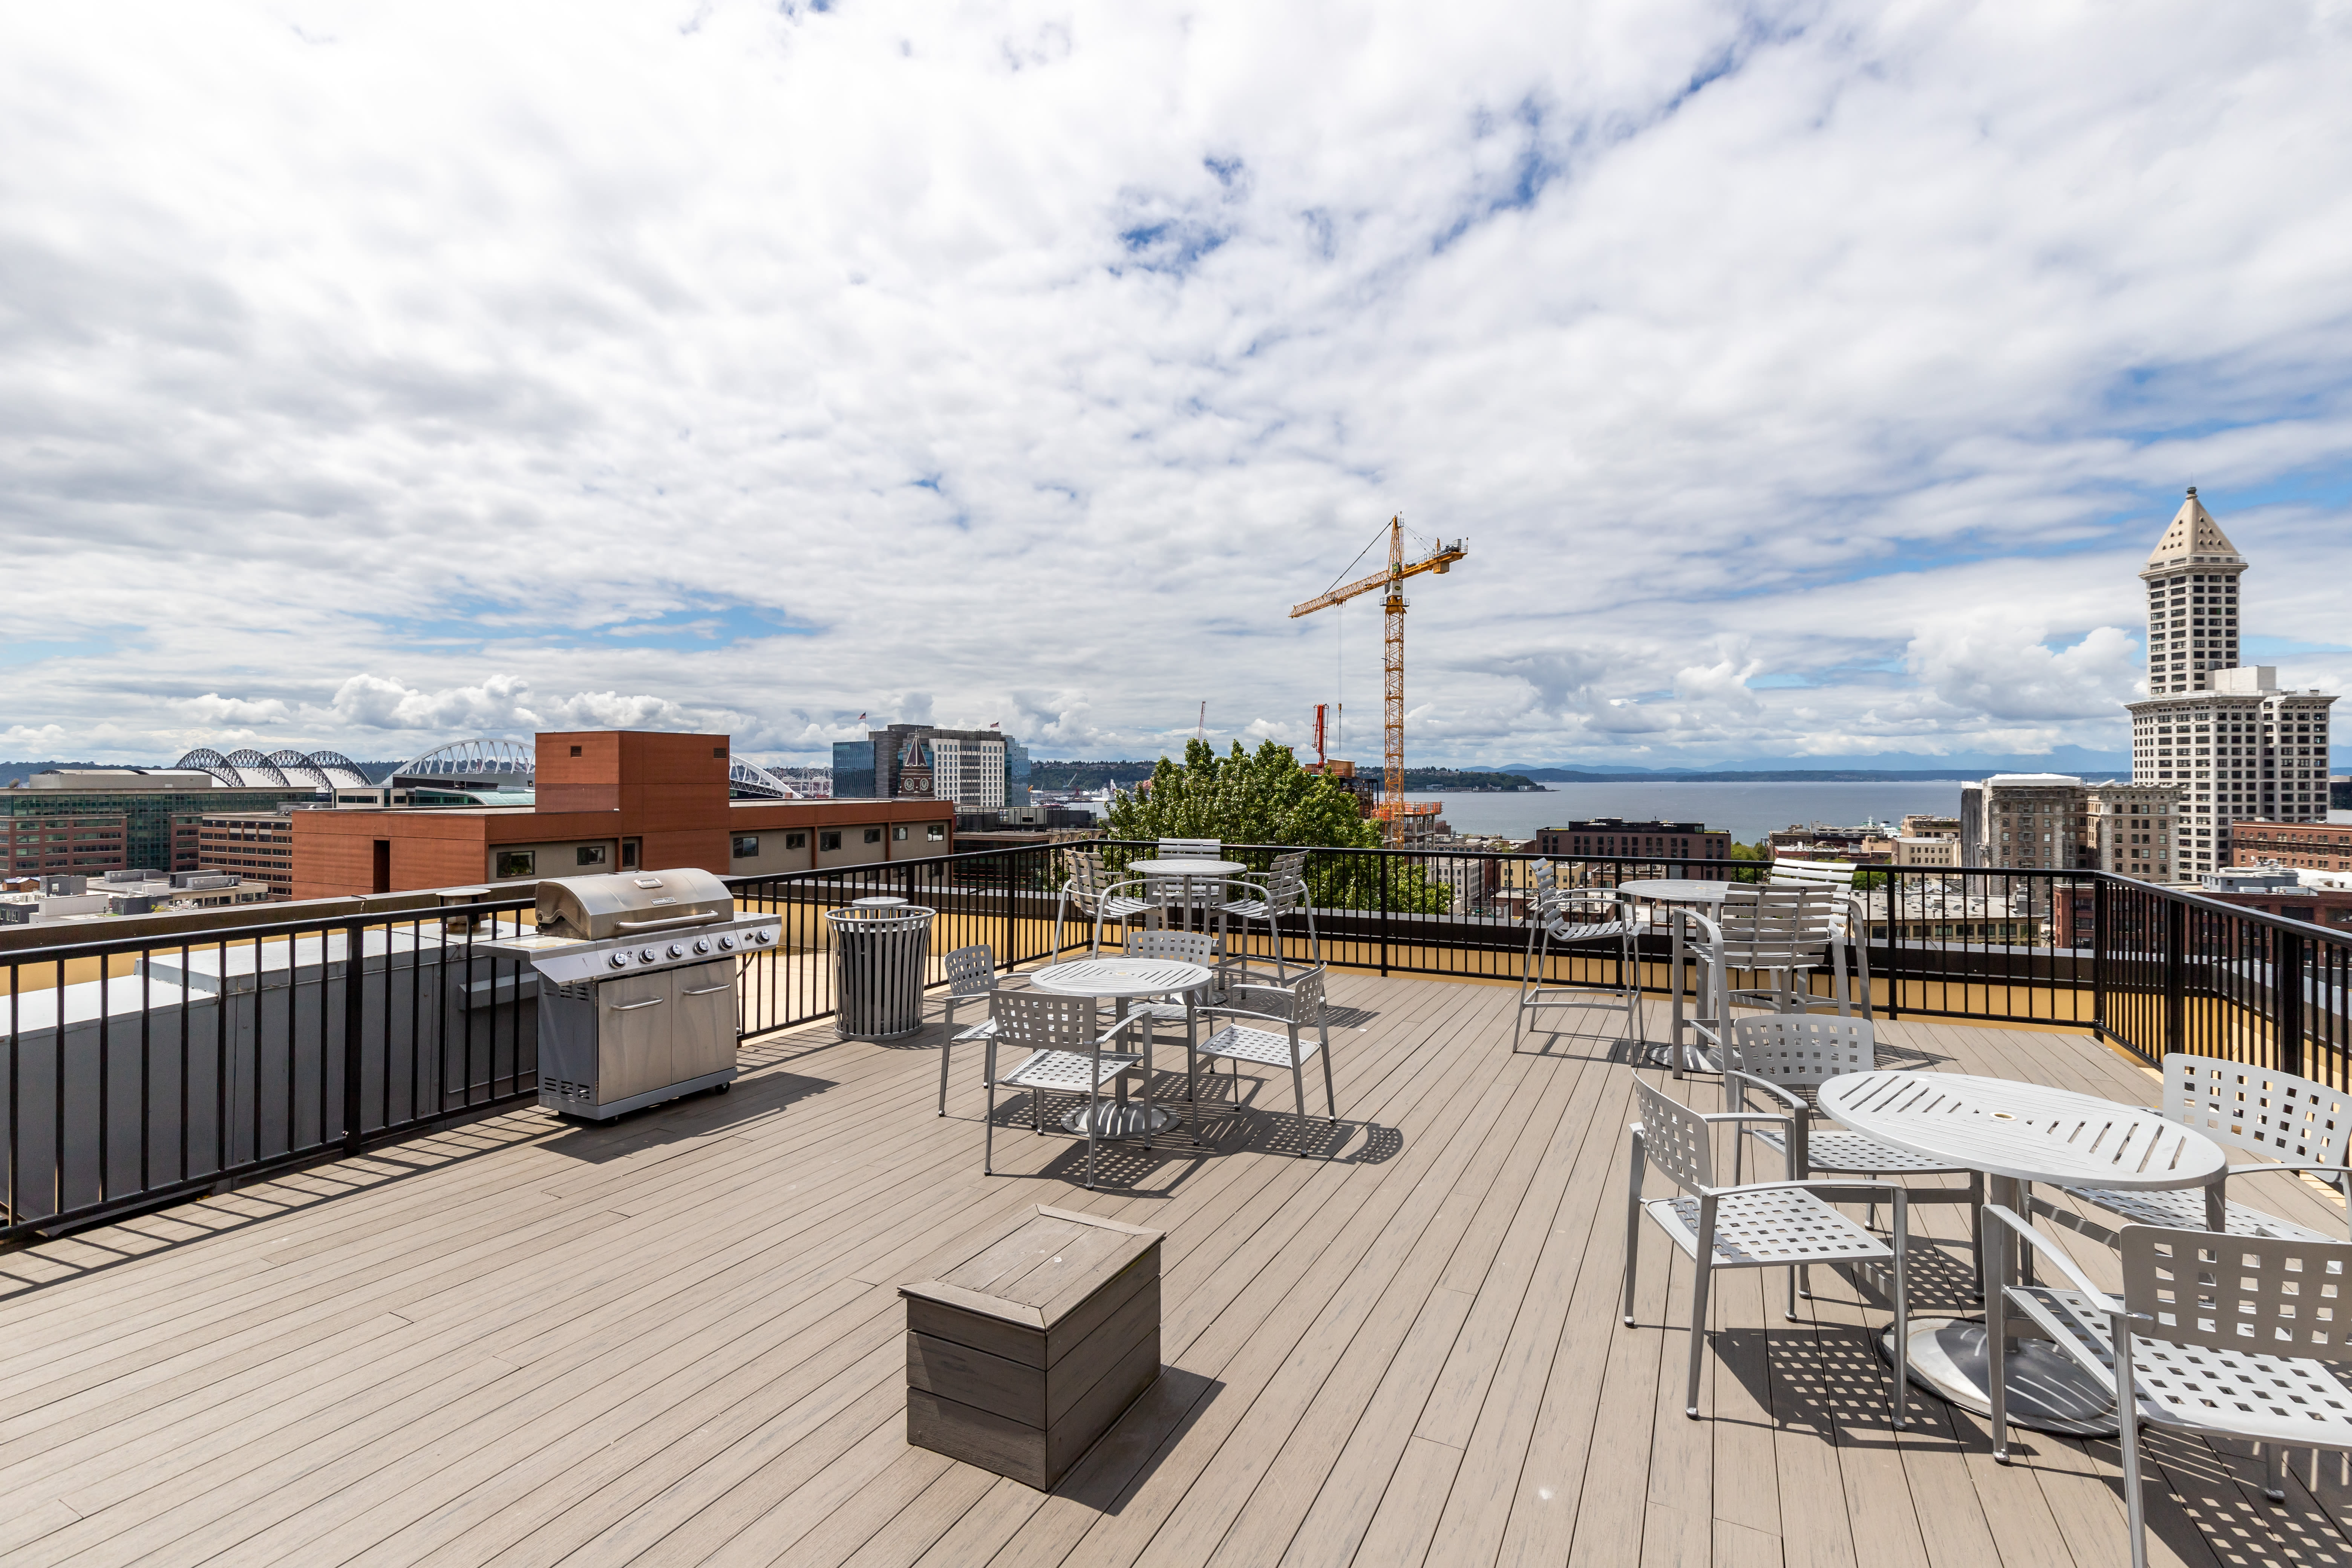 Rooftop deck with great views at Metropolitan Park Apartments in Seattle, Washington